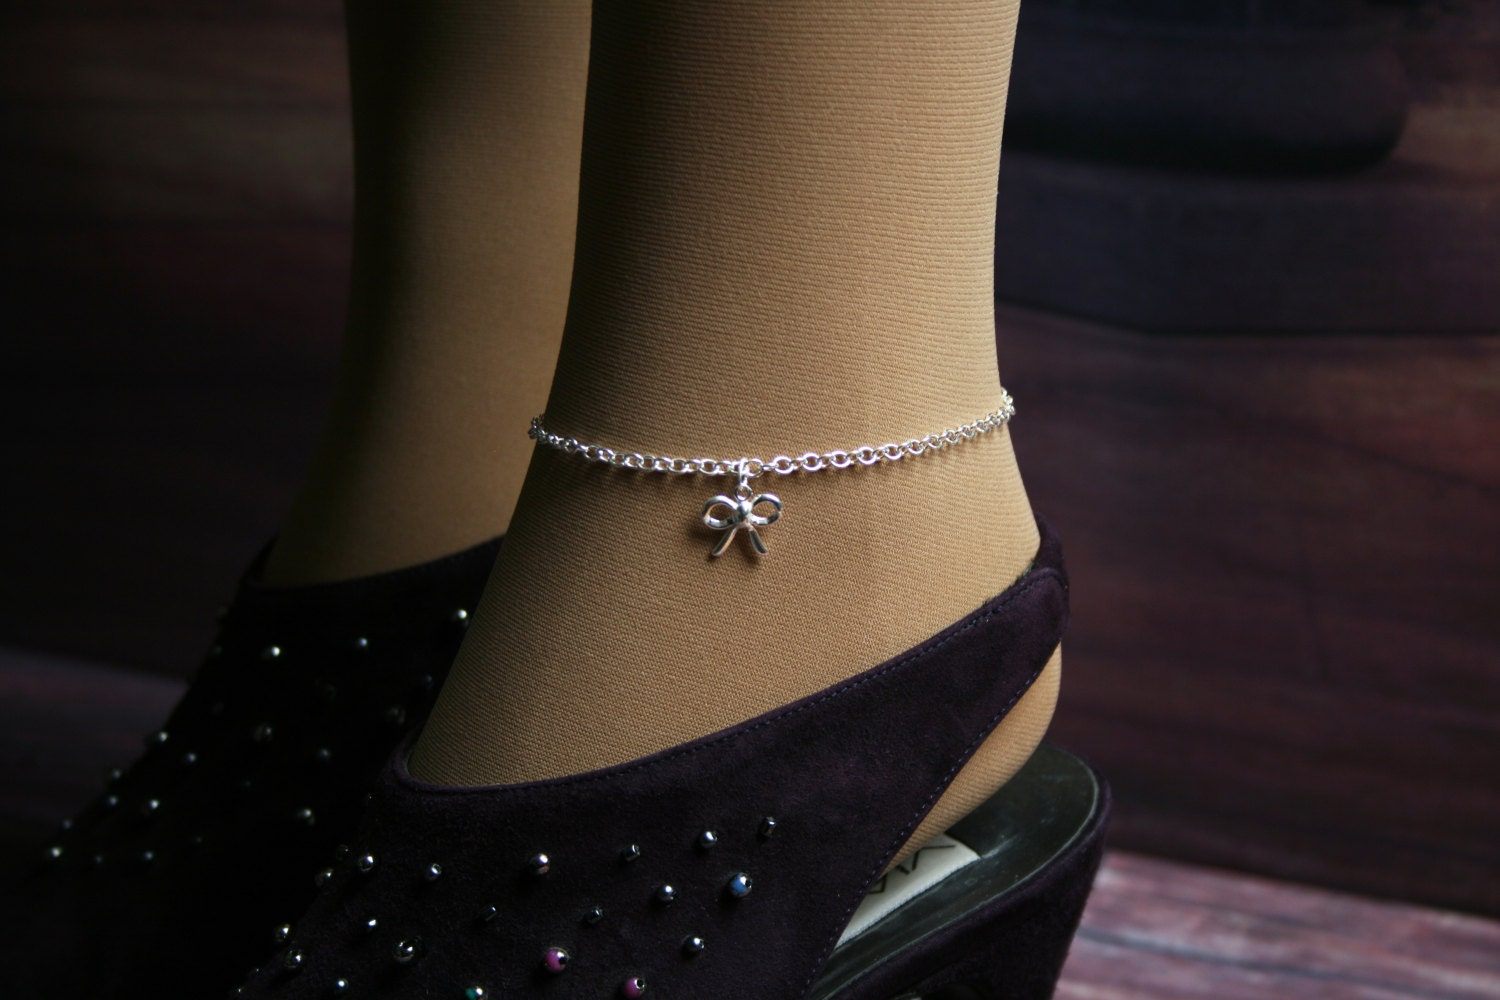 to elegant jewellery anklet photos alive ways permanent ksvhs forever keep locking s the wear anklets